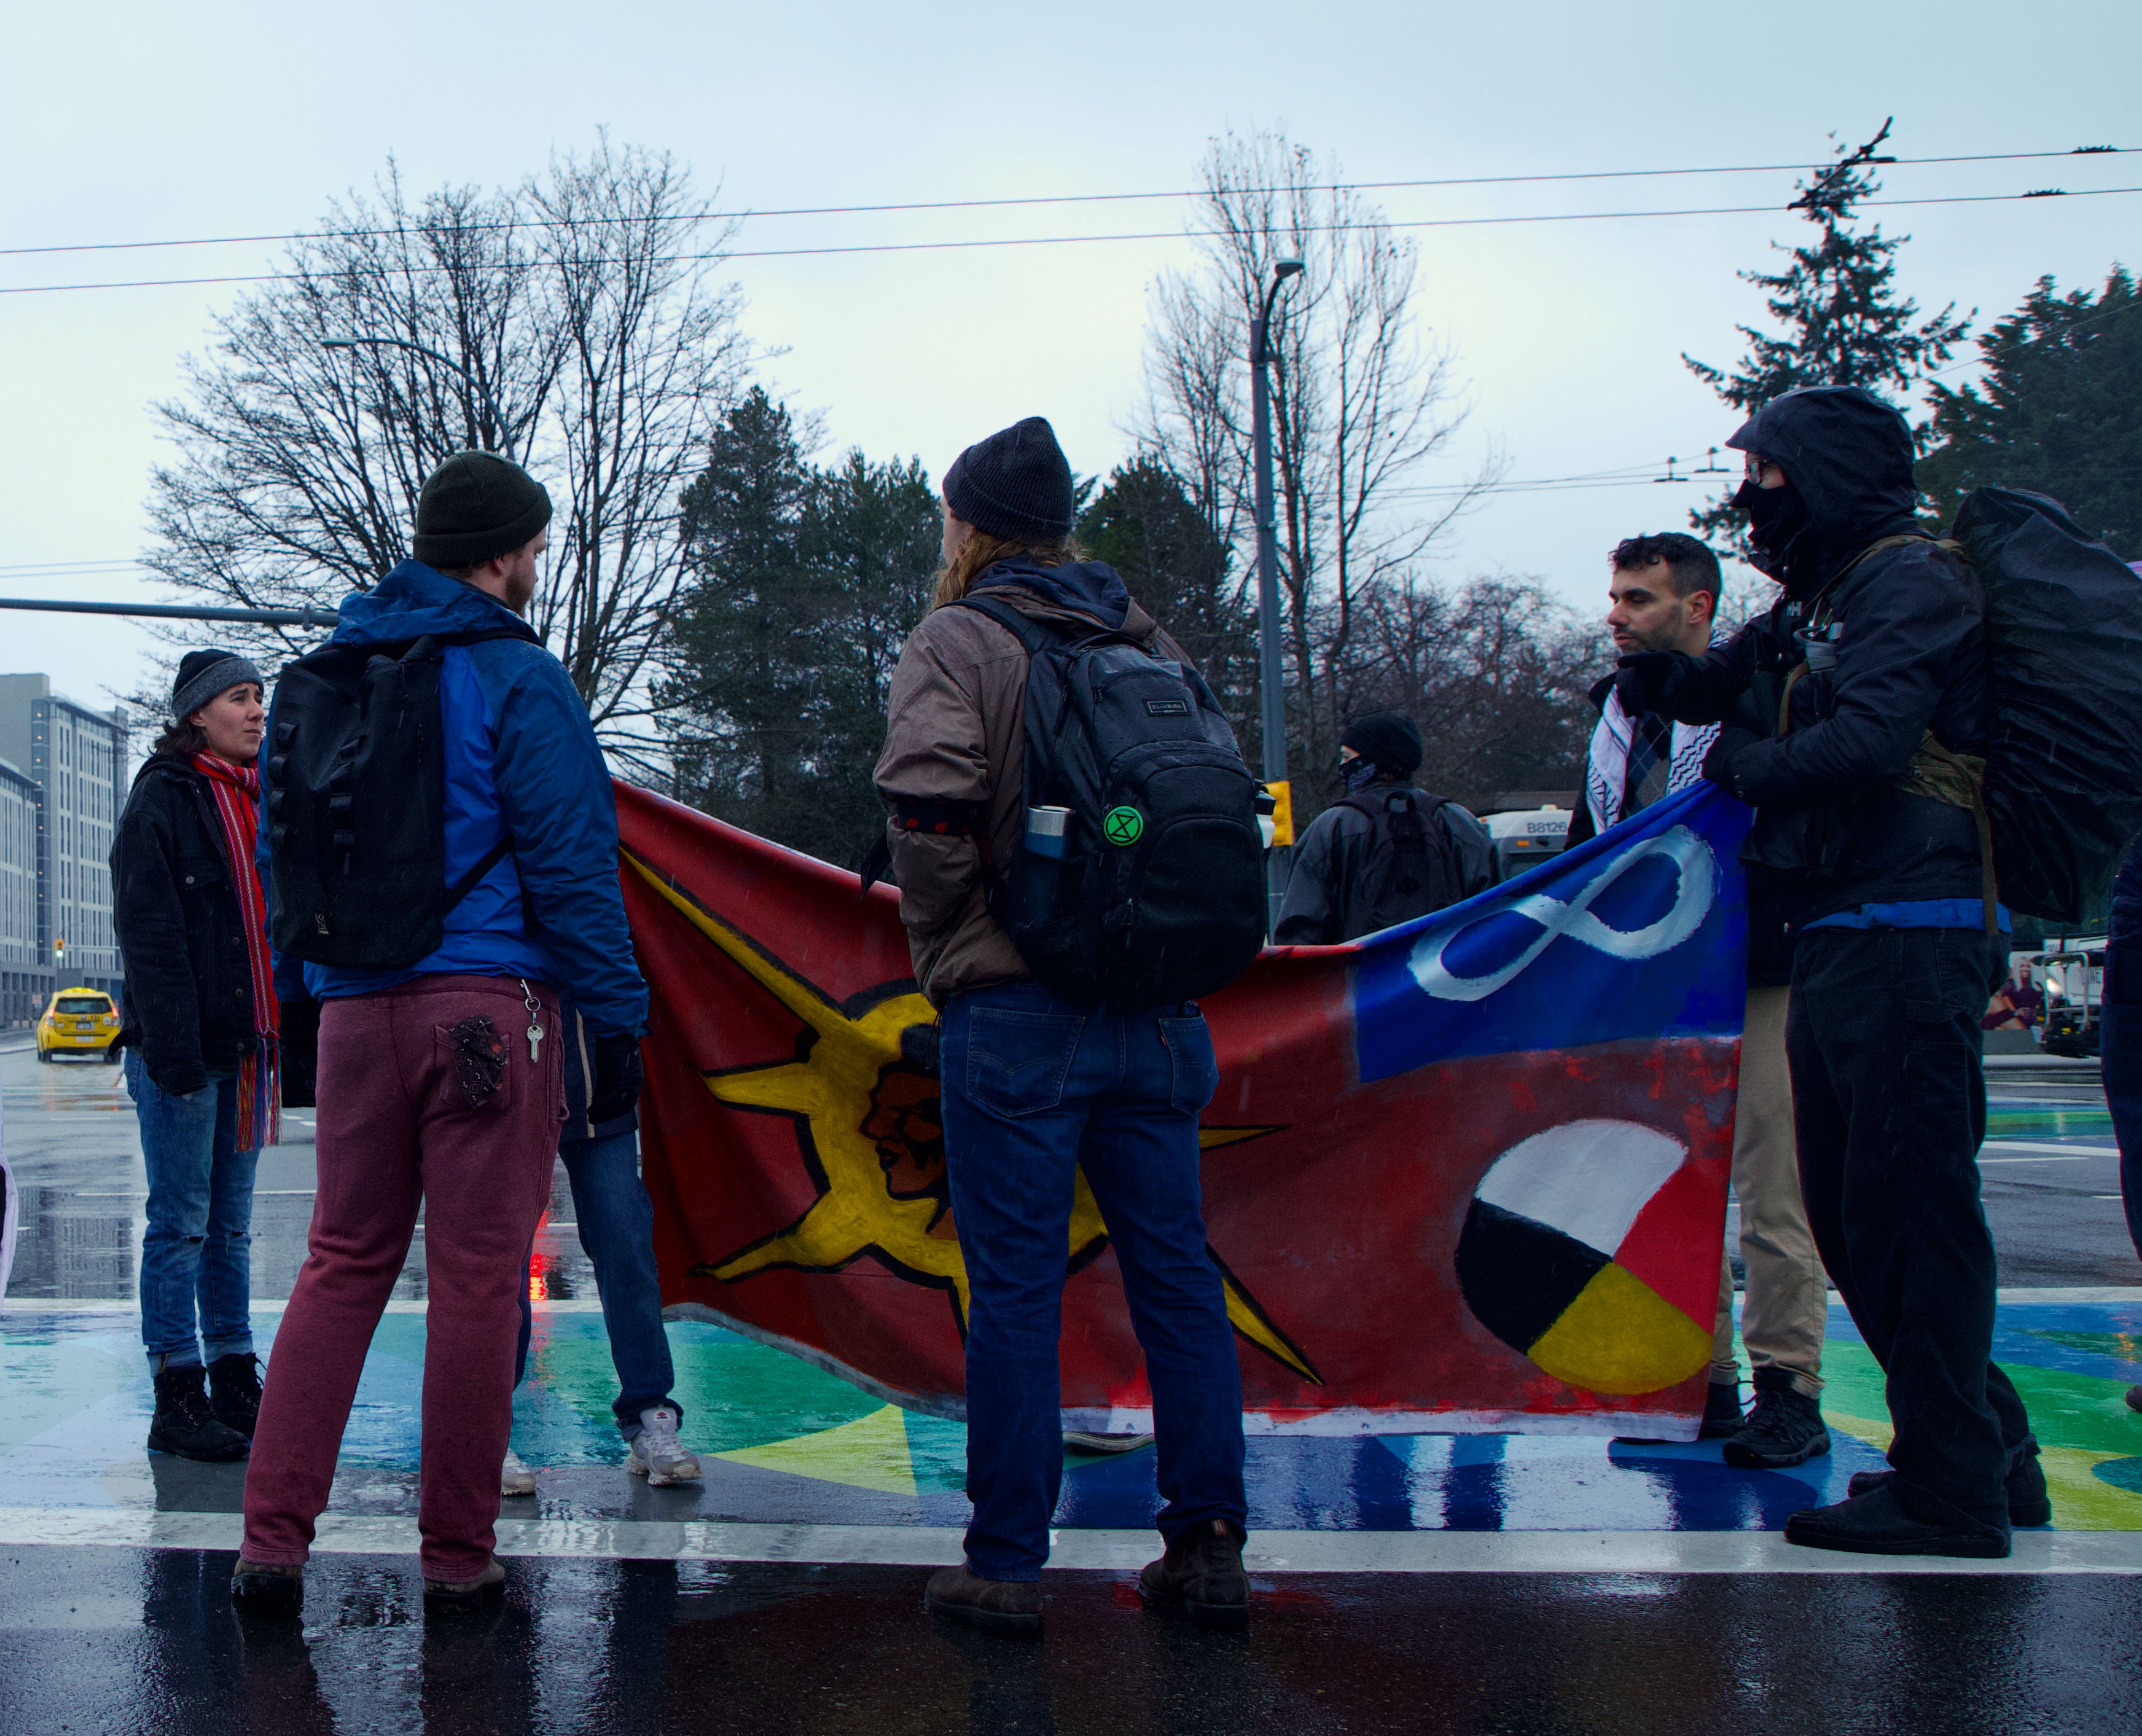 Demonstrators say the blockade forces people to think about what's going on in Wet'suwet'en territory.